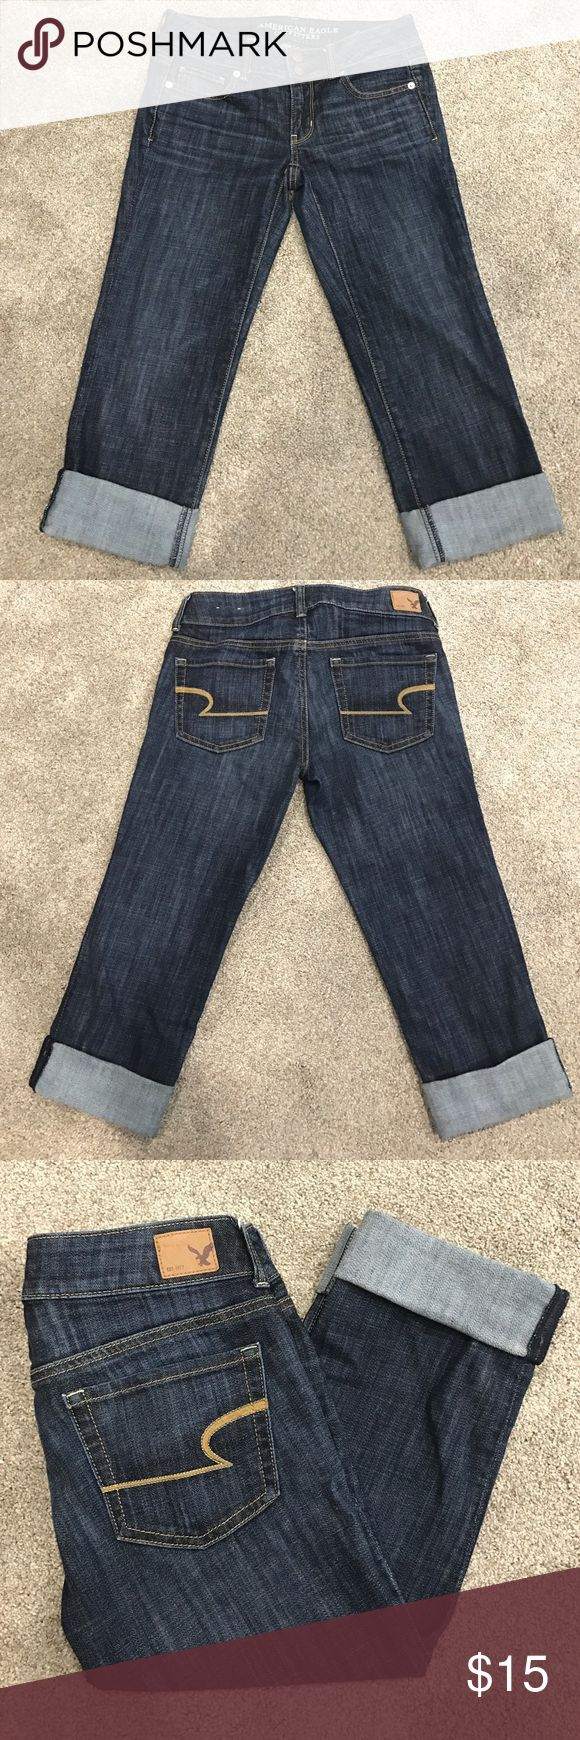 American eagle outfitters jean capris size 2 Gently worn American eagle outfitters jean capris, size 2. Artist crop stretch. American Eagle Outfitters Jeans